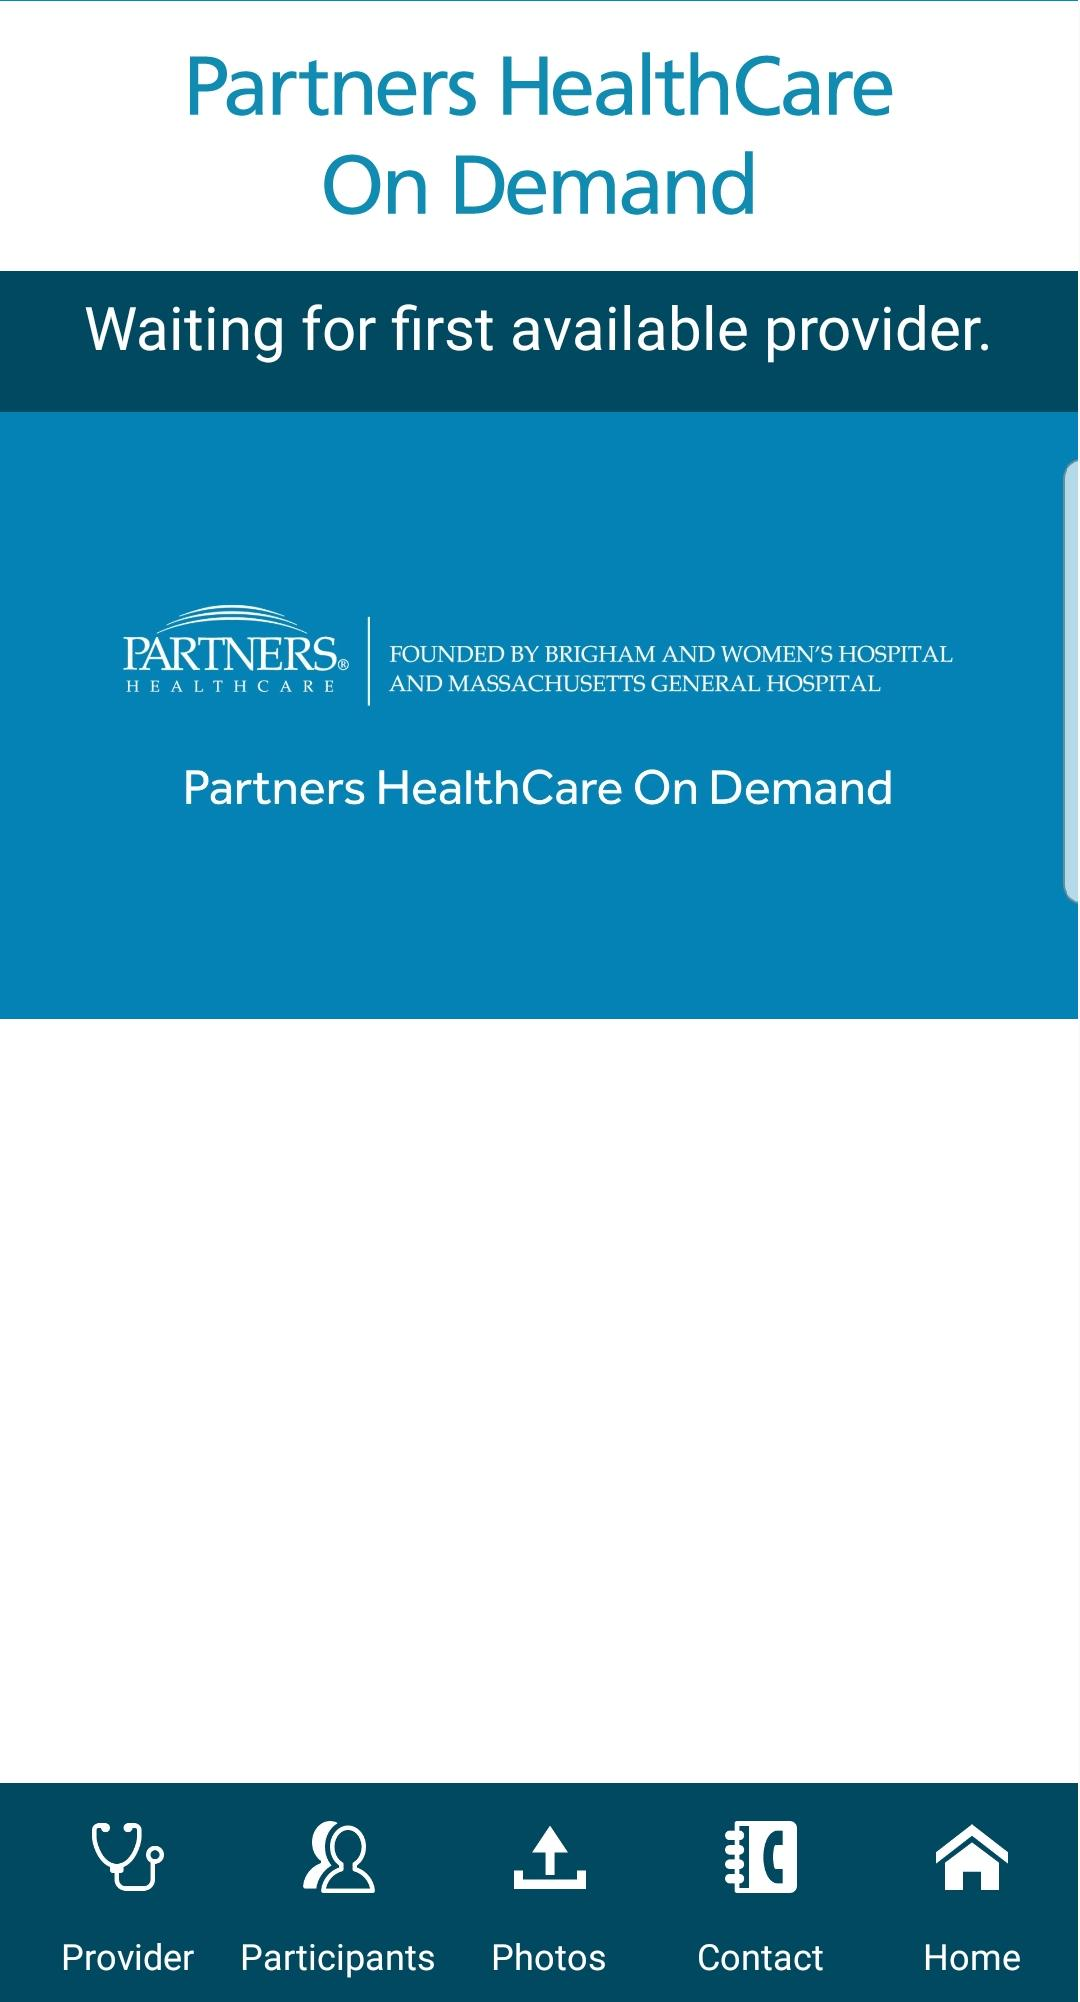 Partners HealthCare On Demand for Android - APK Download